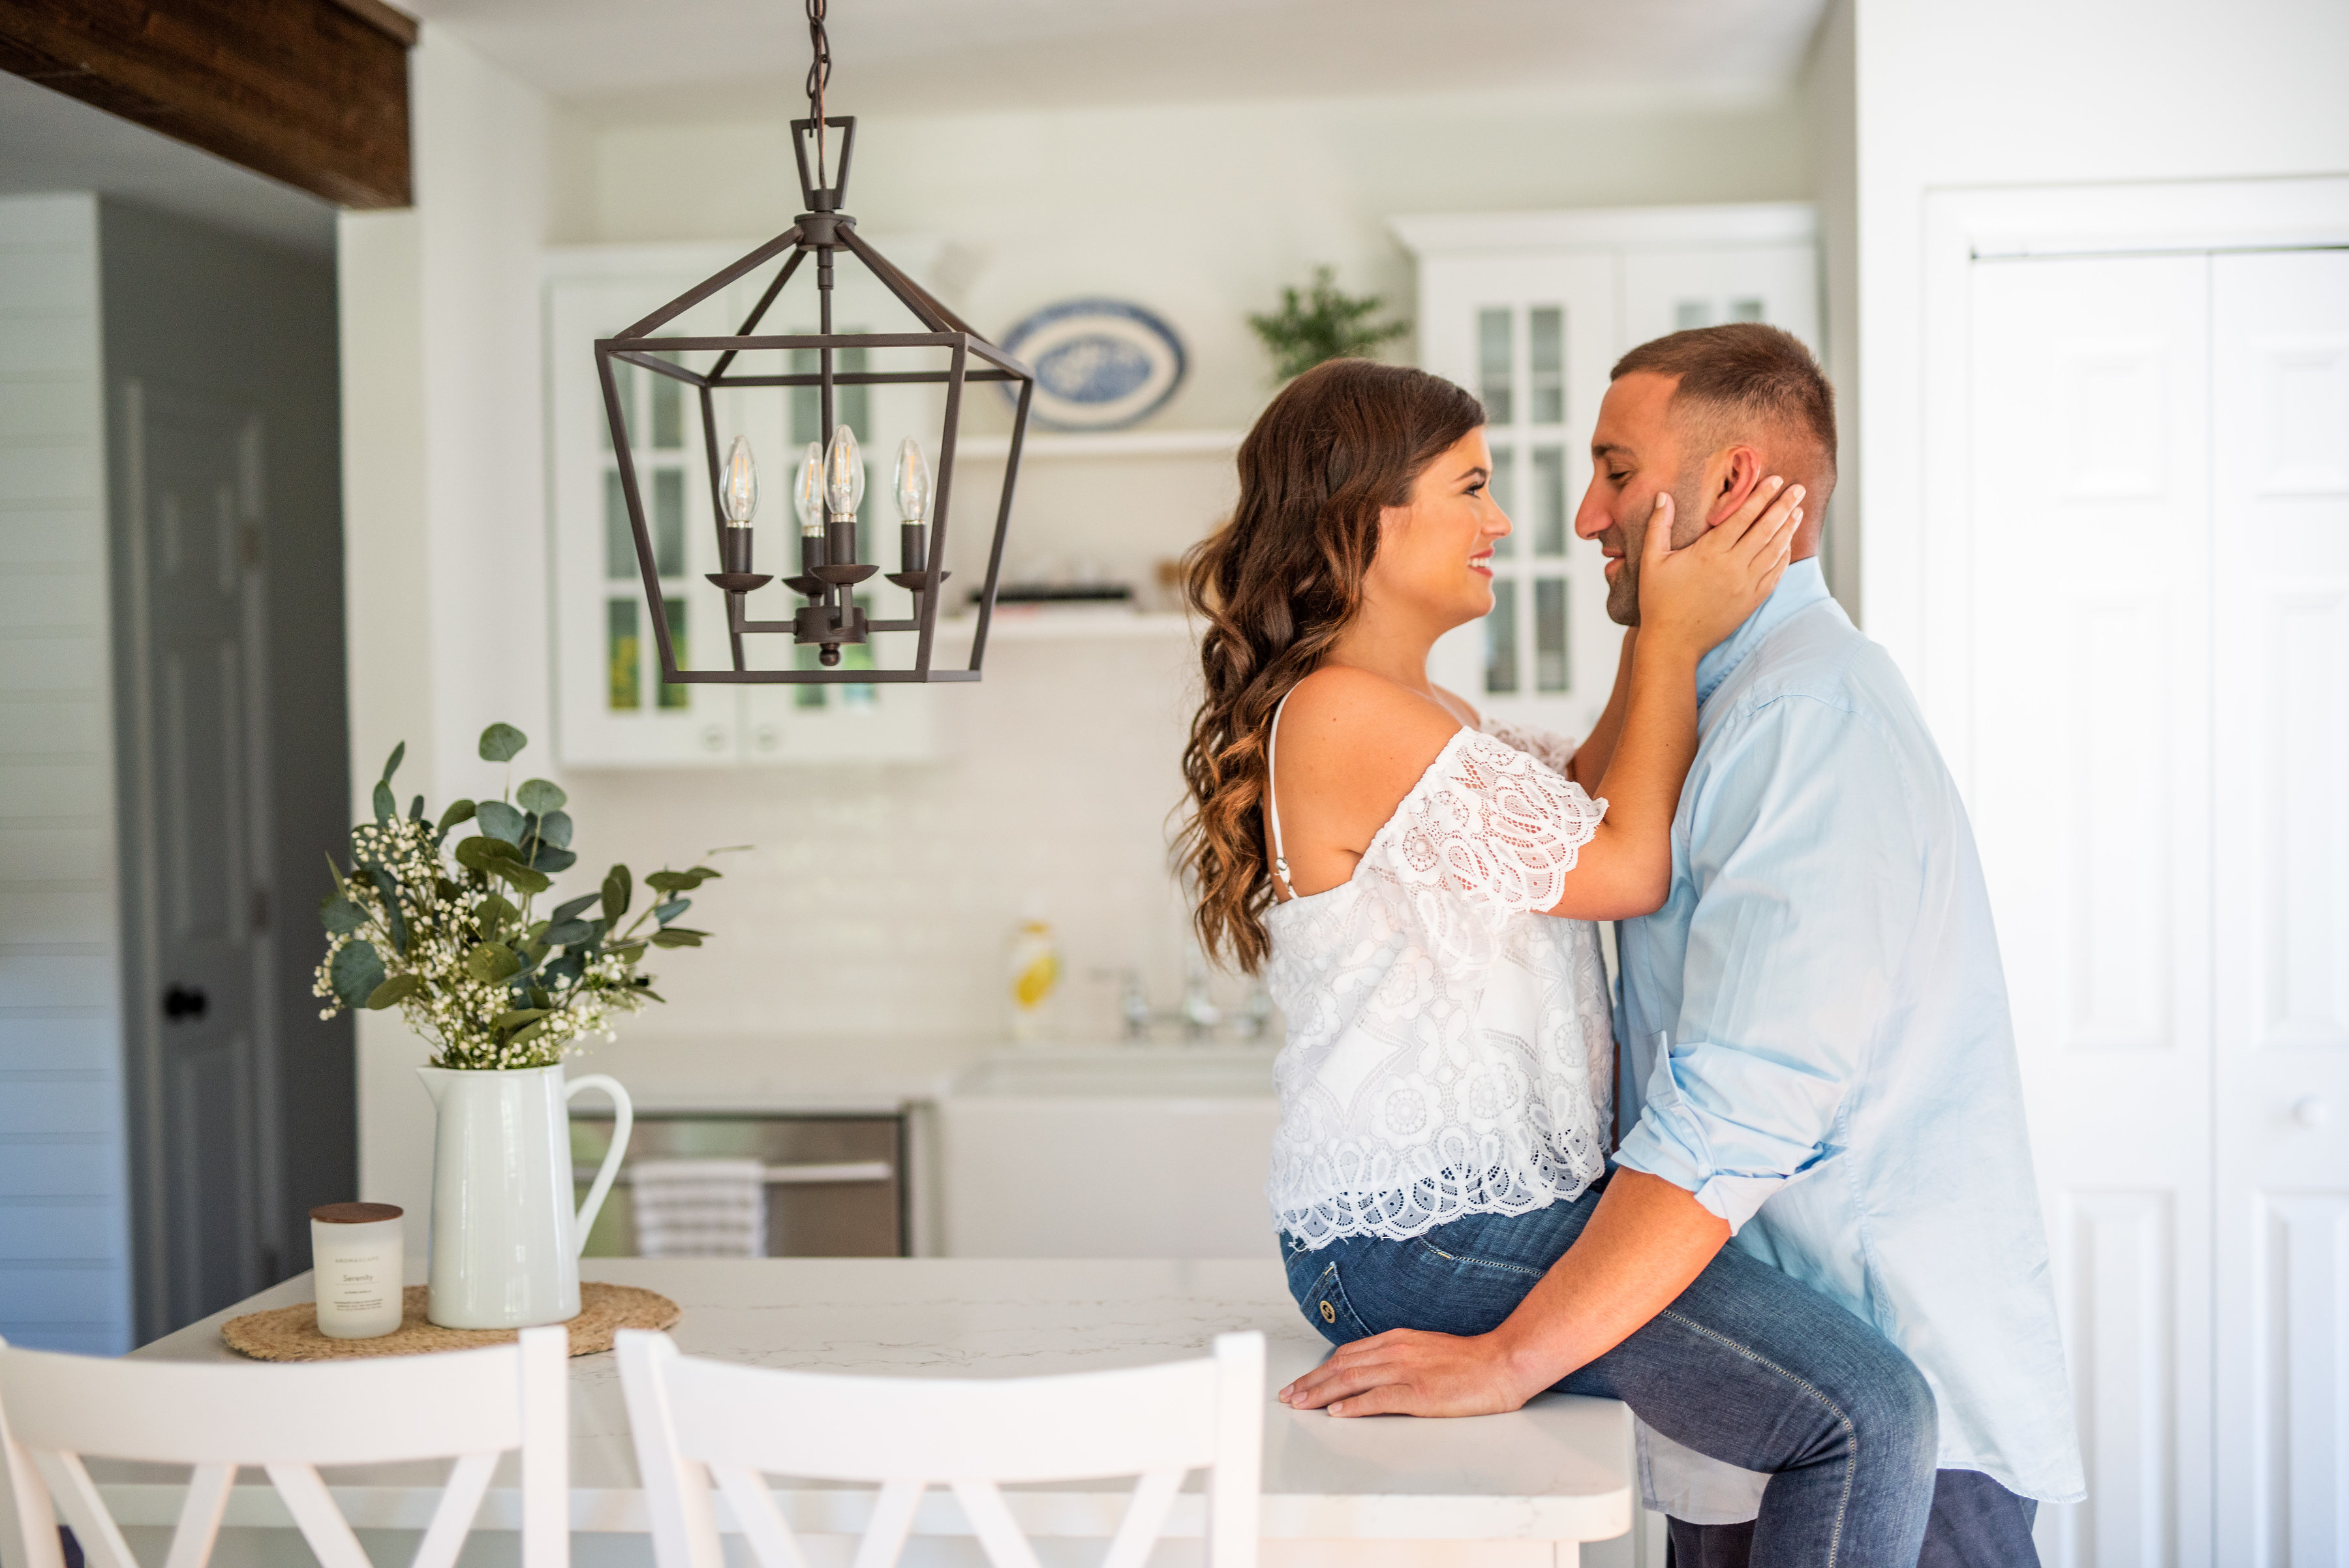 Calverton Engagement Shoot | Engagement Shoot at Home | Rustic Farrm Kitchen Engagement Shoot | North Forrk Wedding Photographer12